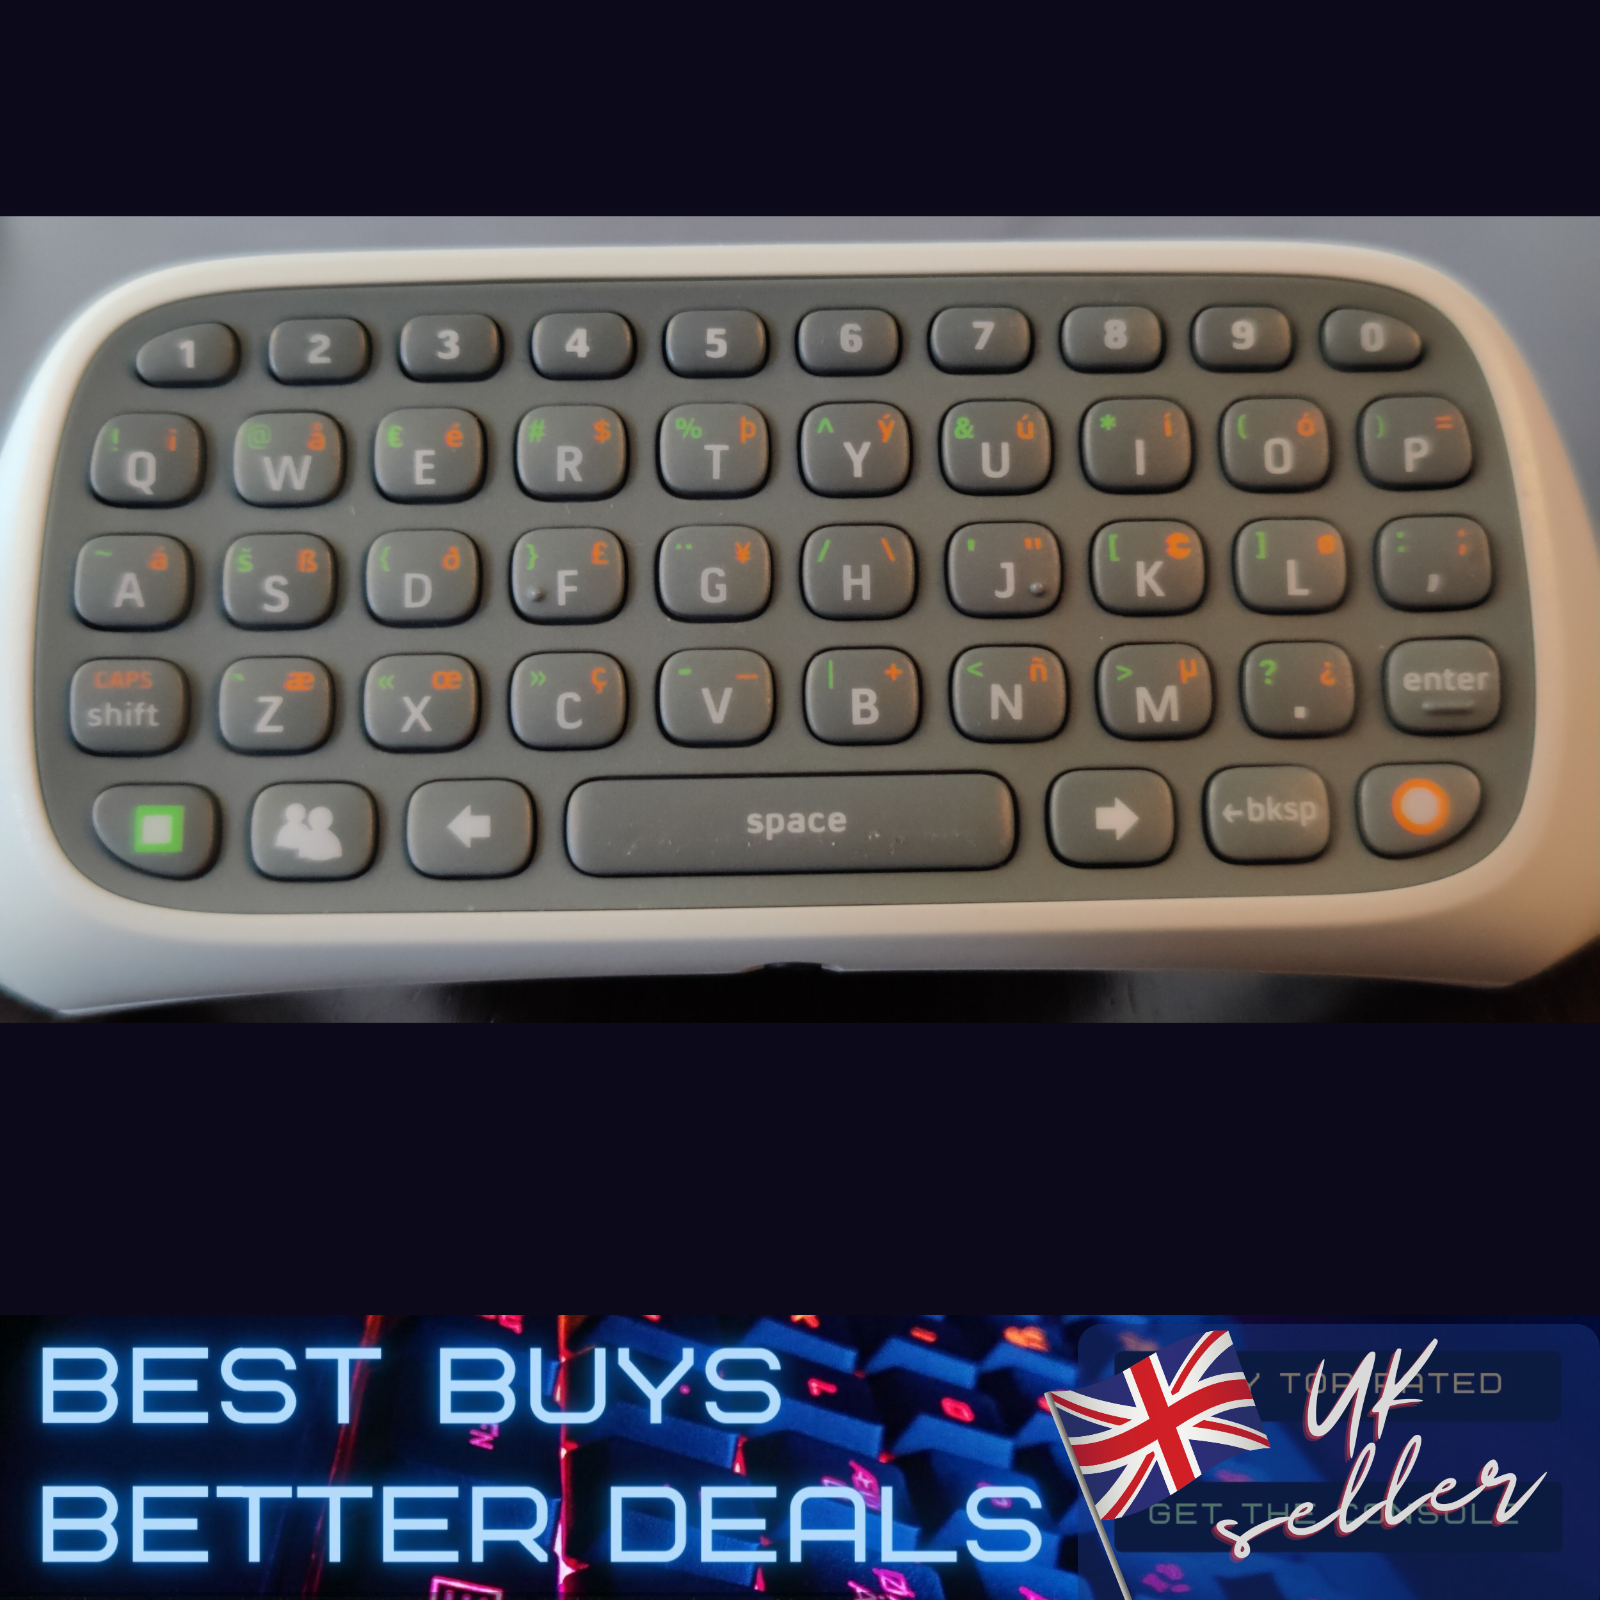 Official XBOX 360 Wireless Controller Messenger Game Keyboard Chatpad Keypad VGC